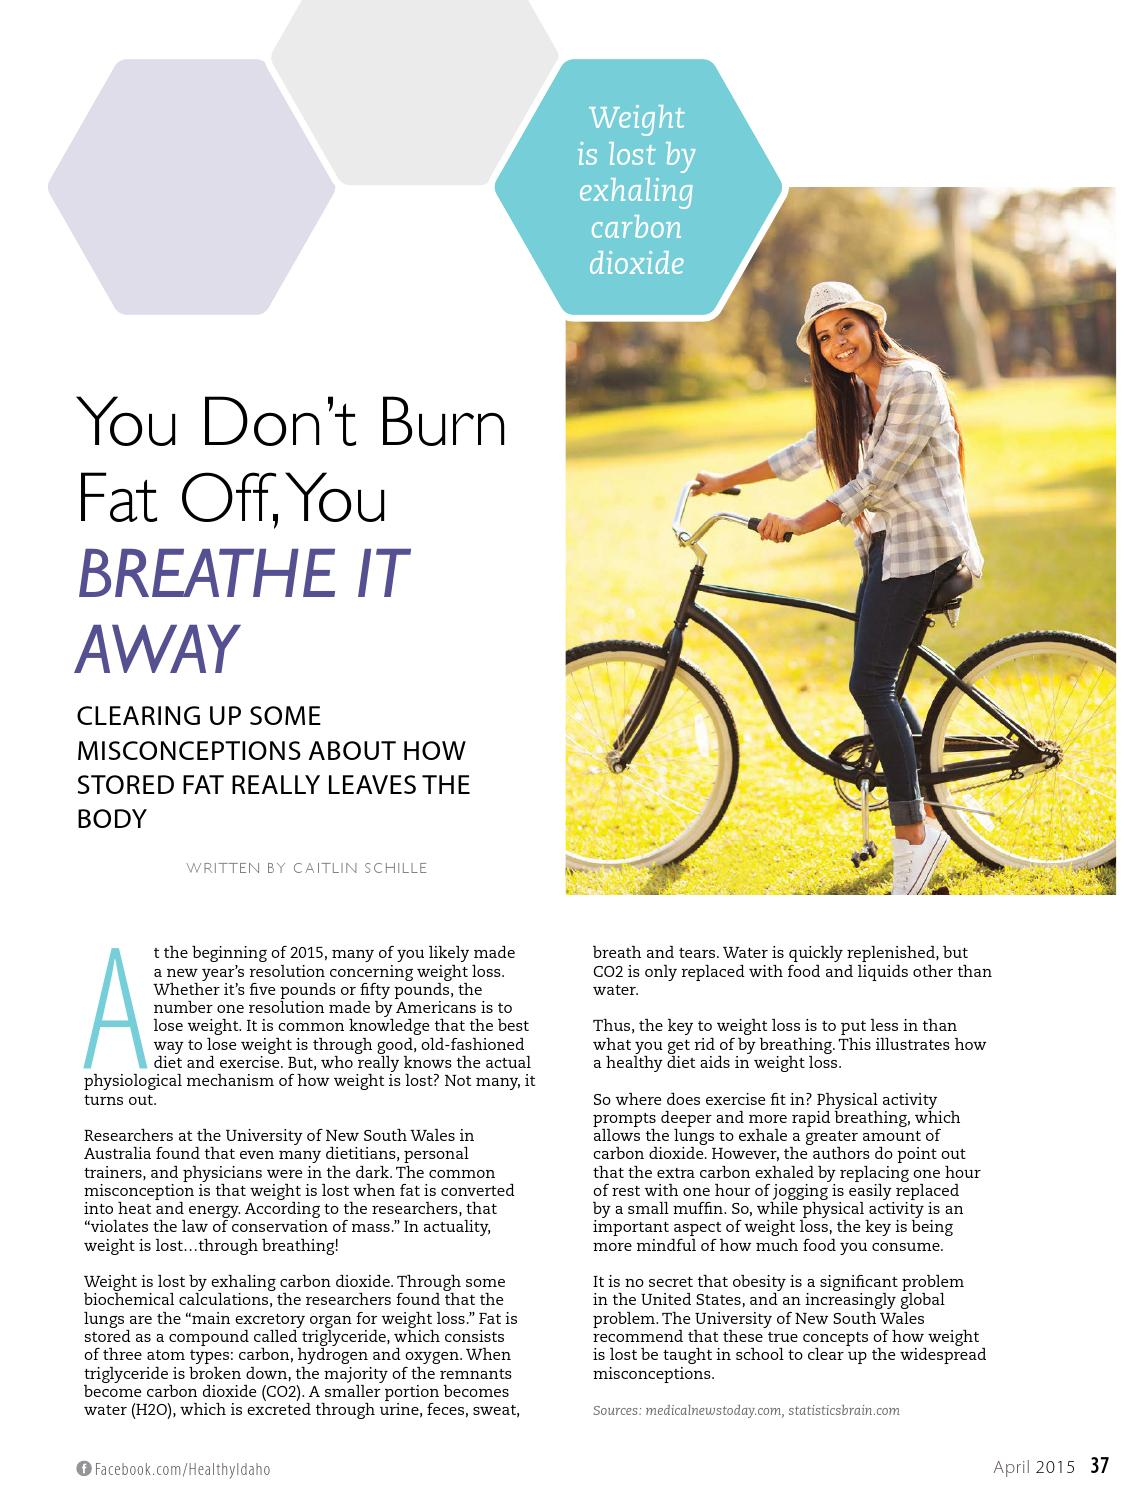 Do you burn more fat walking or cycling